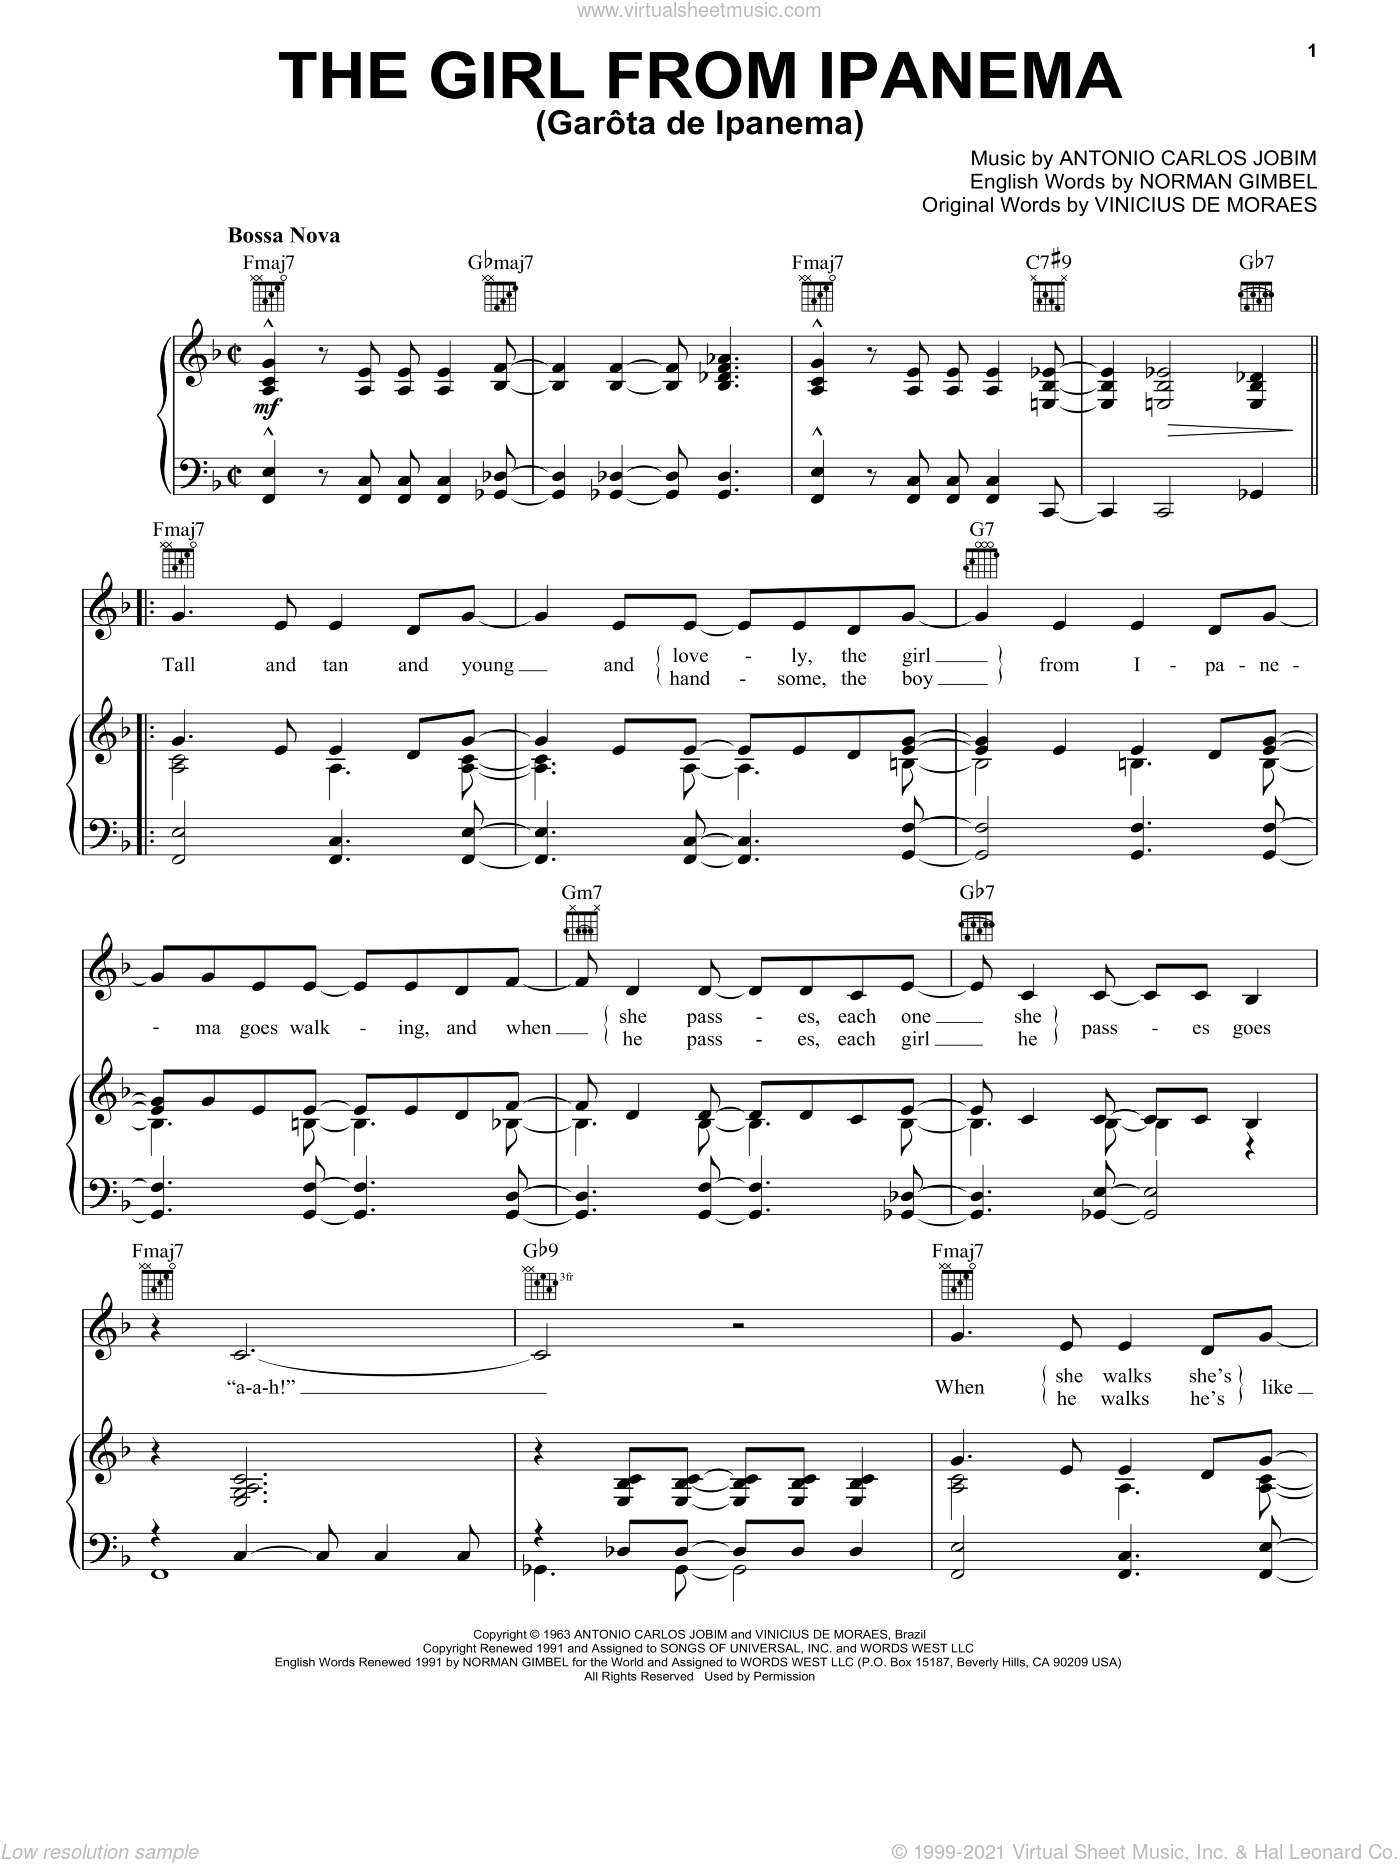 The Girl From Ipanema (Garota De Ipanema) sheet music for voice, piano or guitar by Frank Sinatra, John Pizzarelli, Antonio Carlos Jobim, Norman Gimbel and Vinicius de Moraes, intermediate skill level